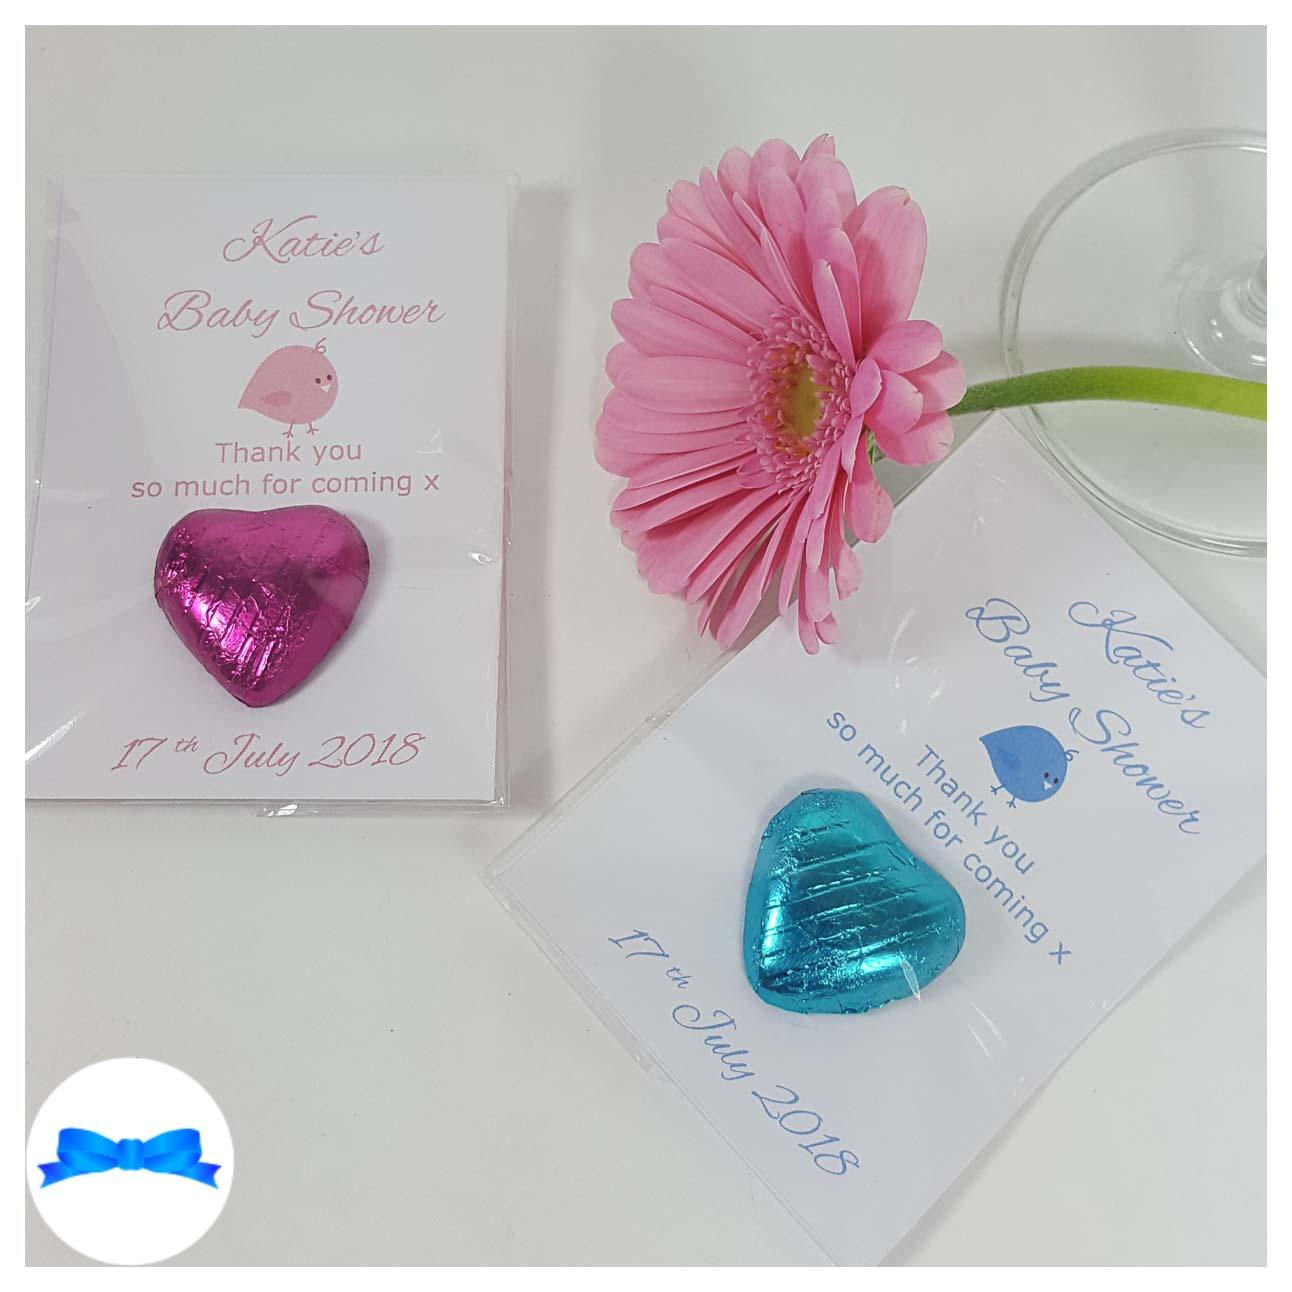 Baby shower chocolate heart favours with pink and blue baby birds